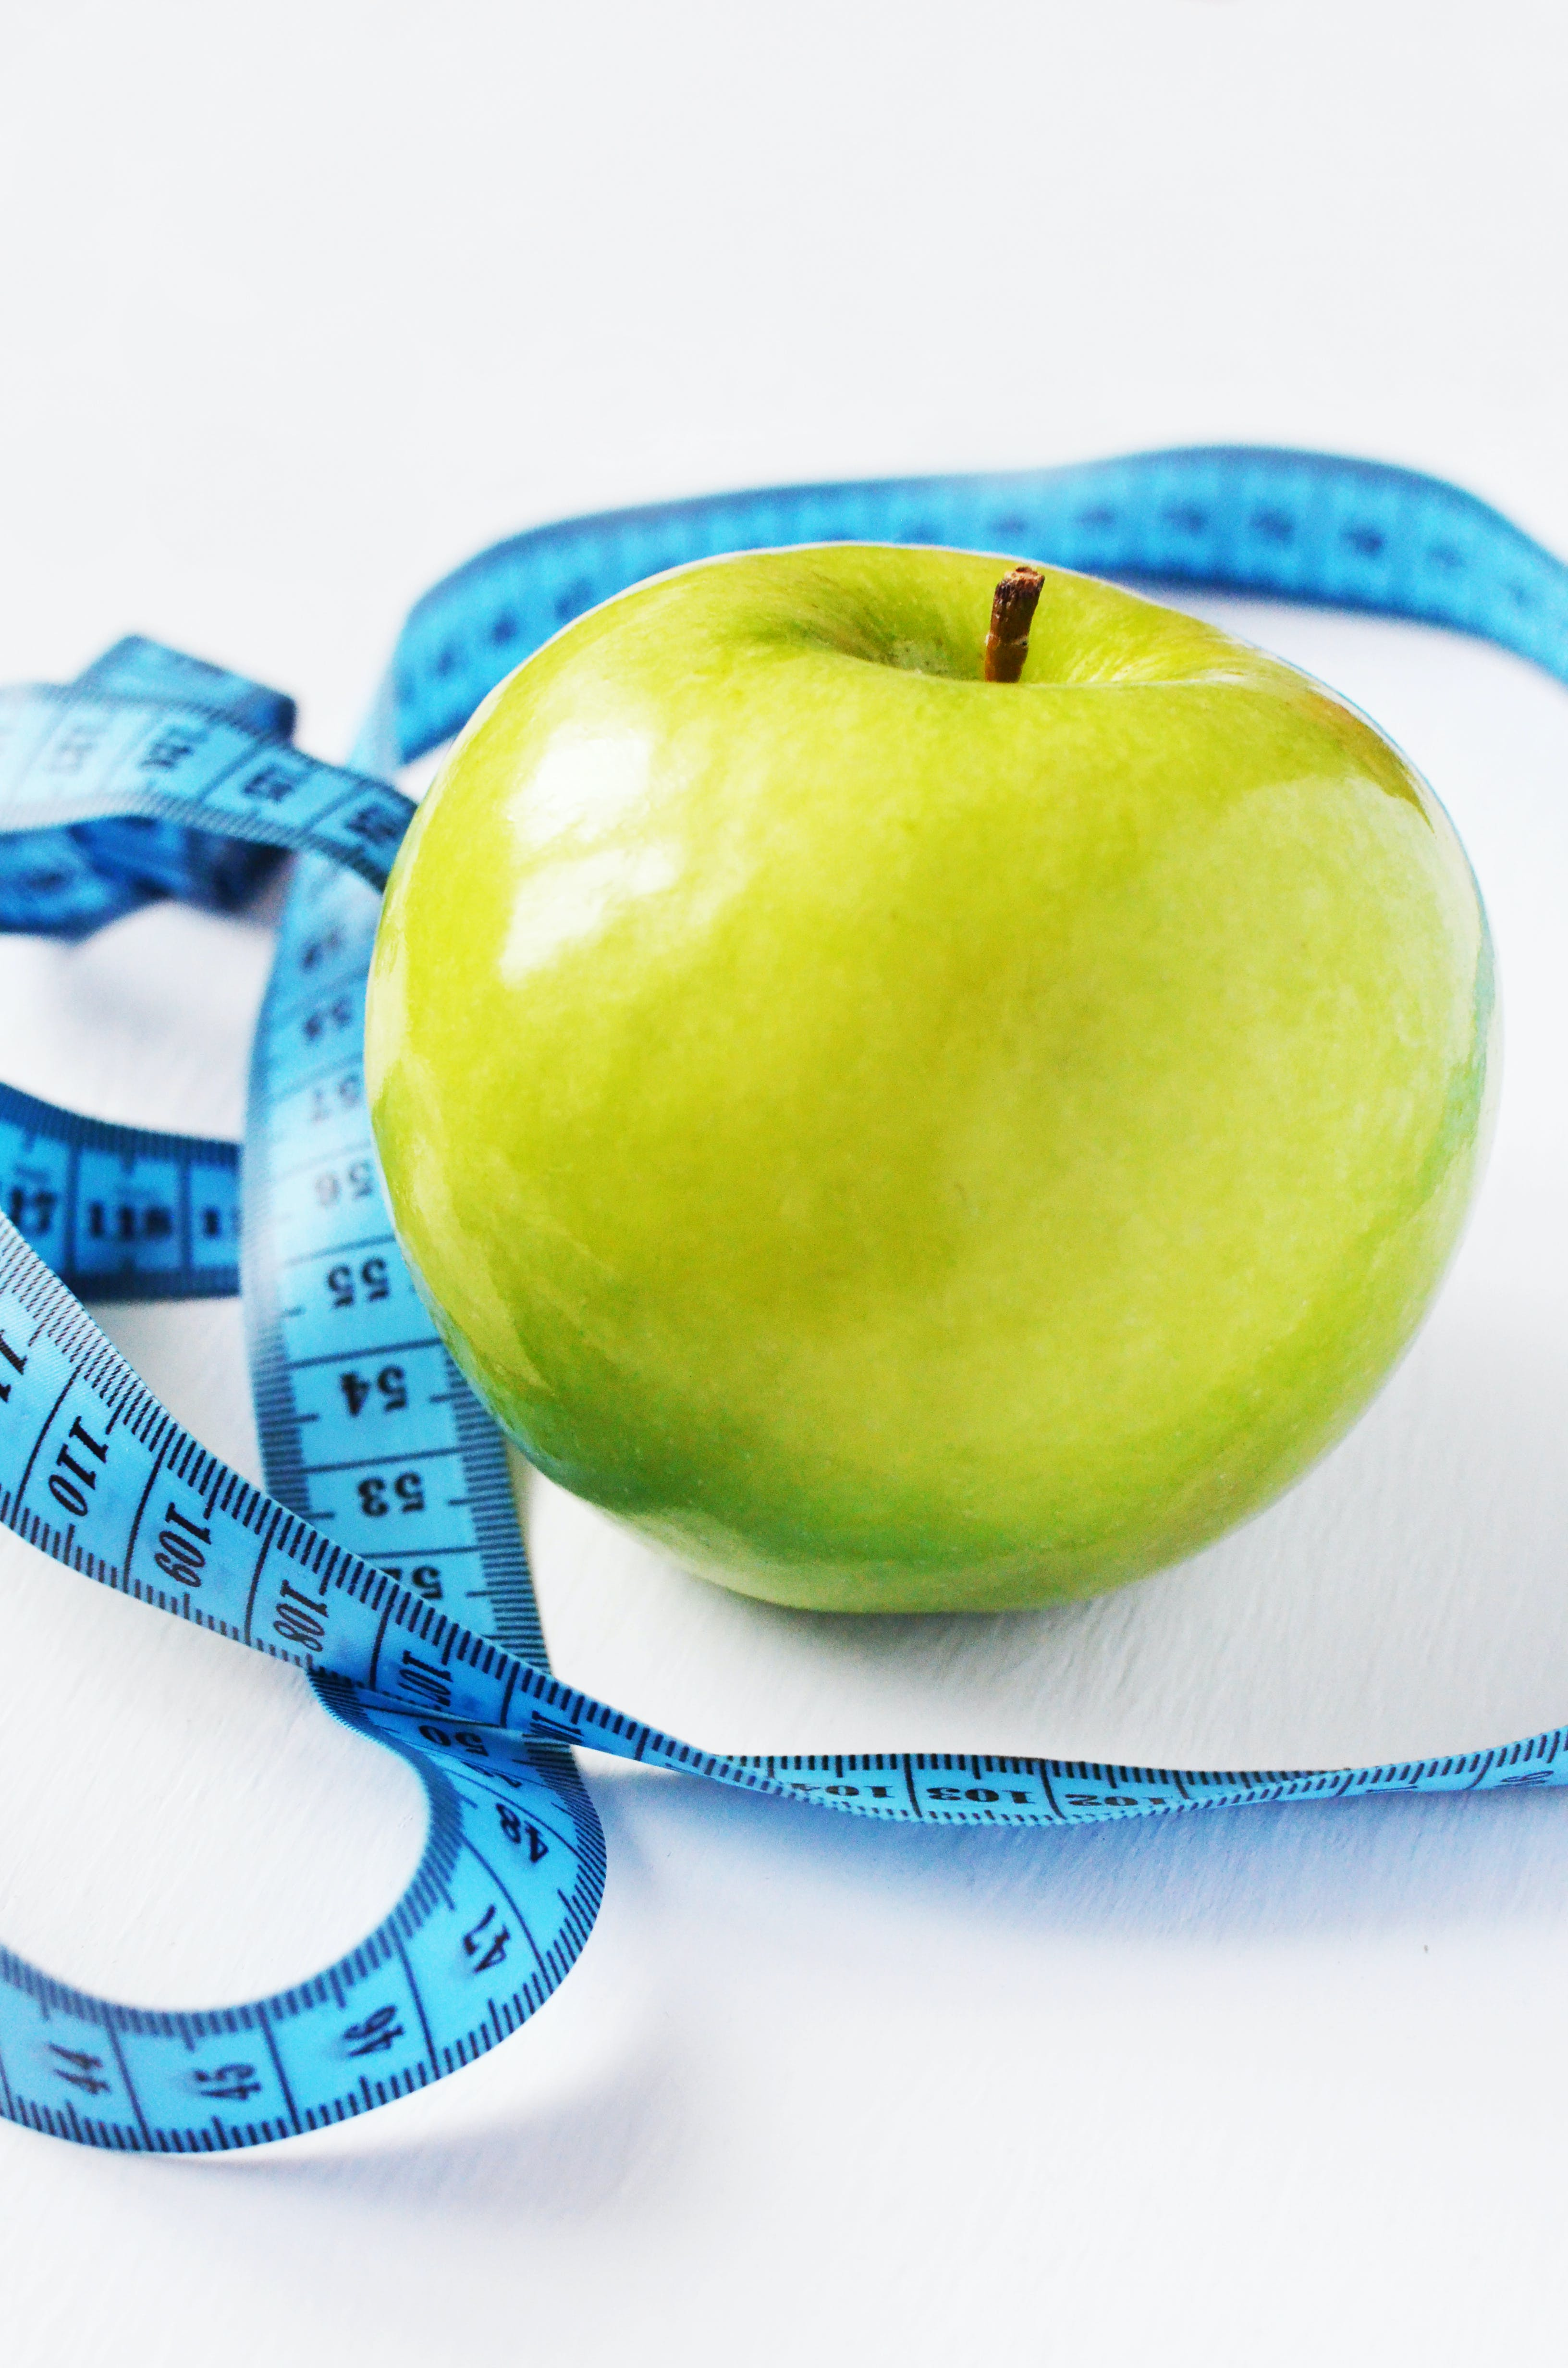 apple, circumference, diet